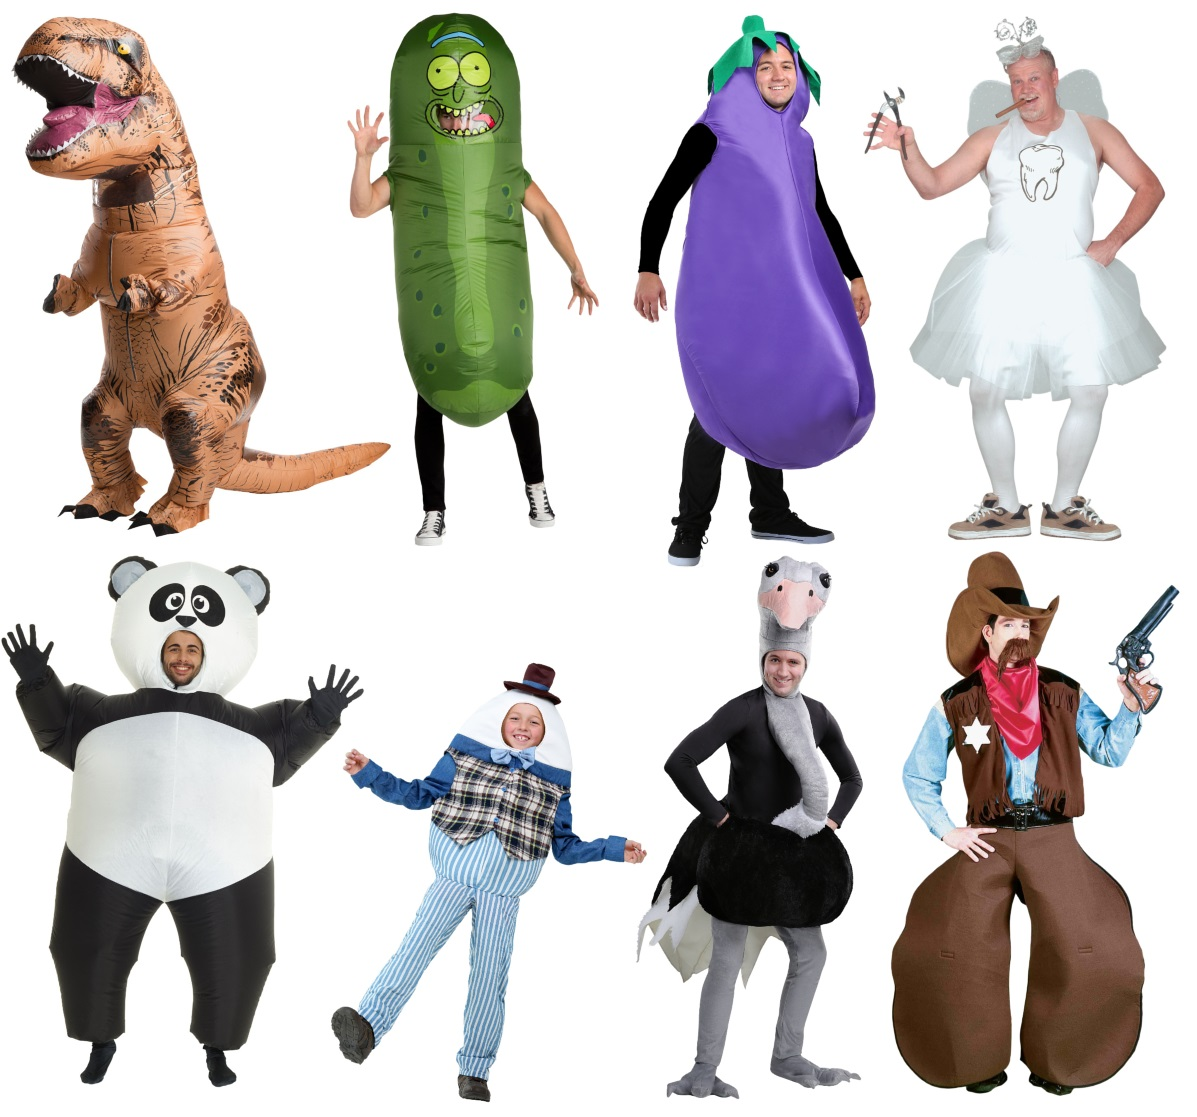 silly costumes for dancing